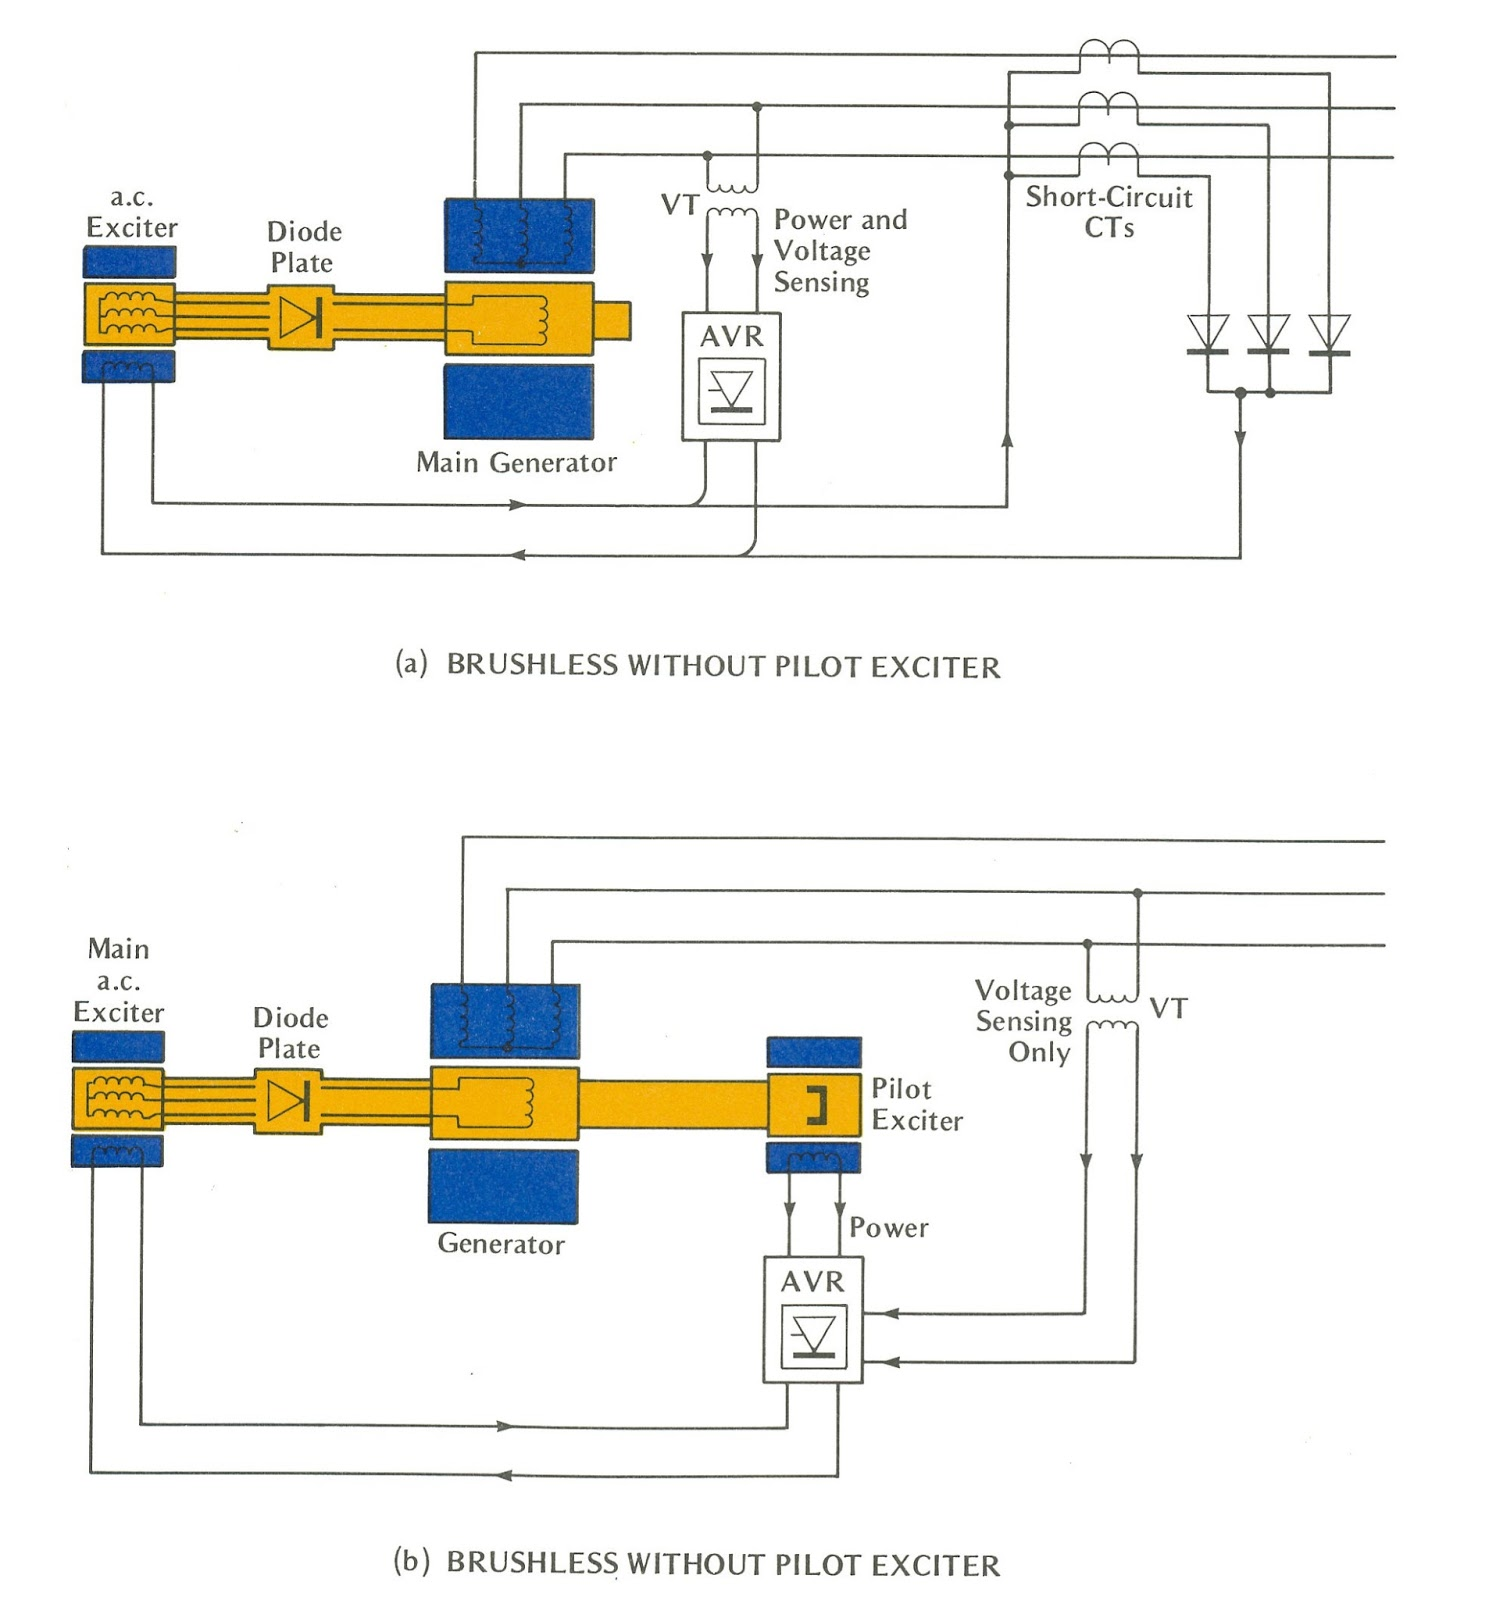 3 Phase Brushless Generator Wiring Diagram Trusted Diagrams 208 Volt Together With Engineering Photos Videos And Articels Search A 208v Panel